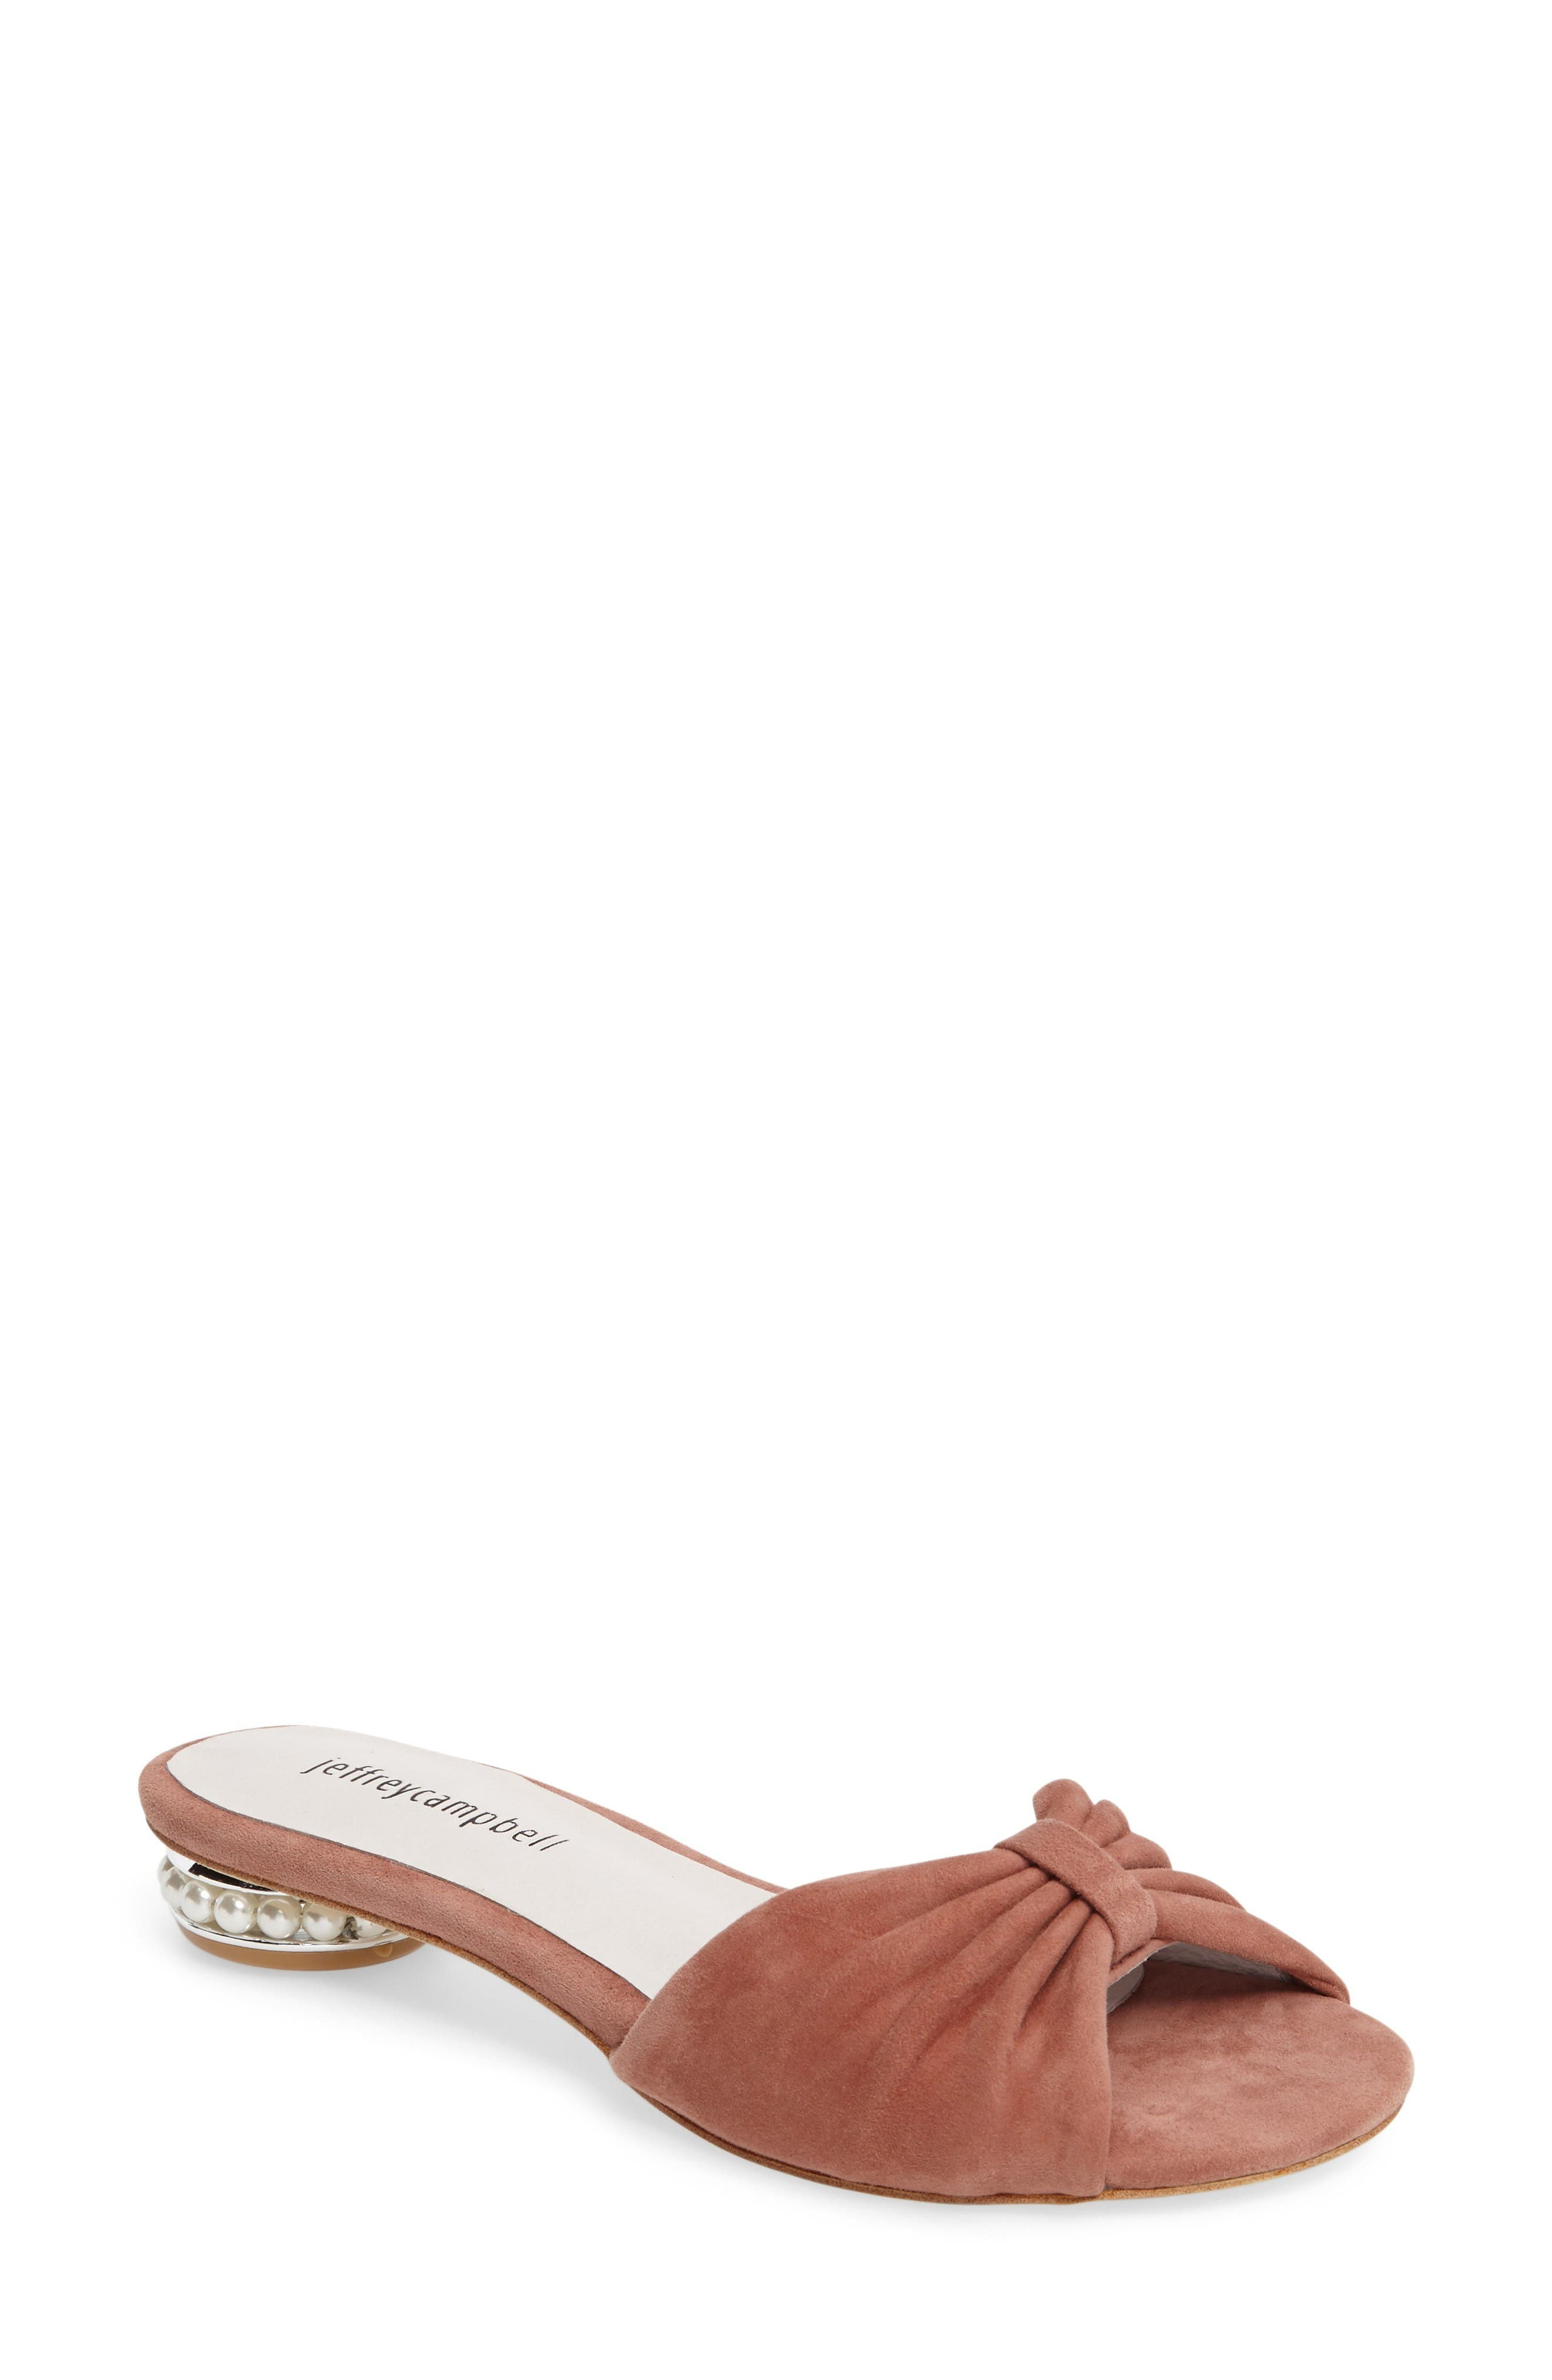 Main Image - Jeffrey Campbell Turbina Embellished Slide Sandal (Women)